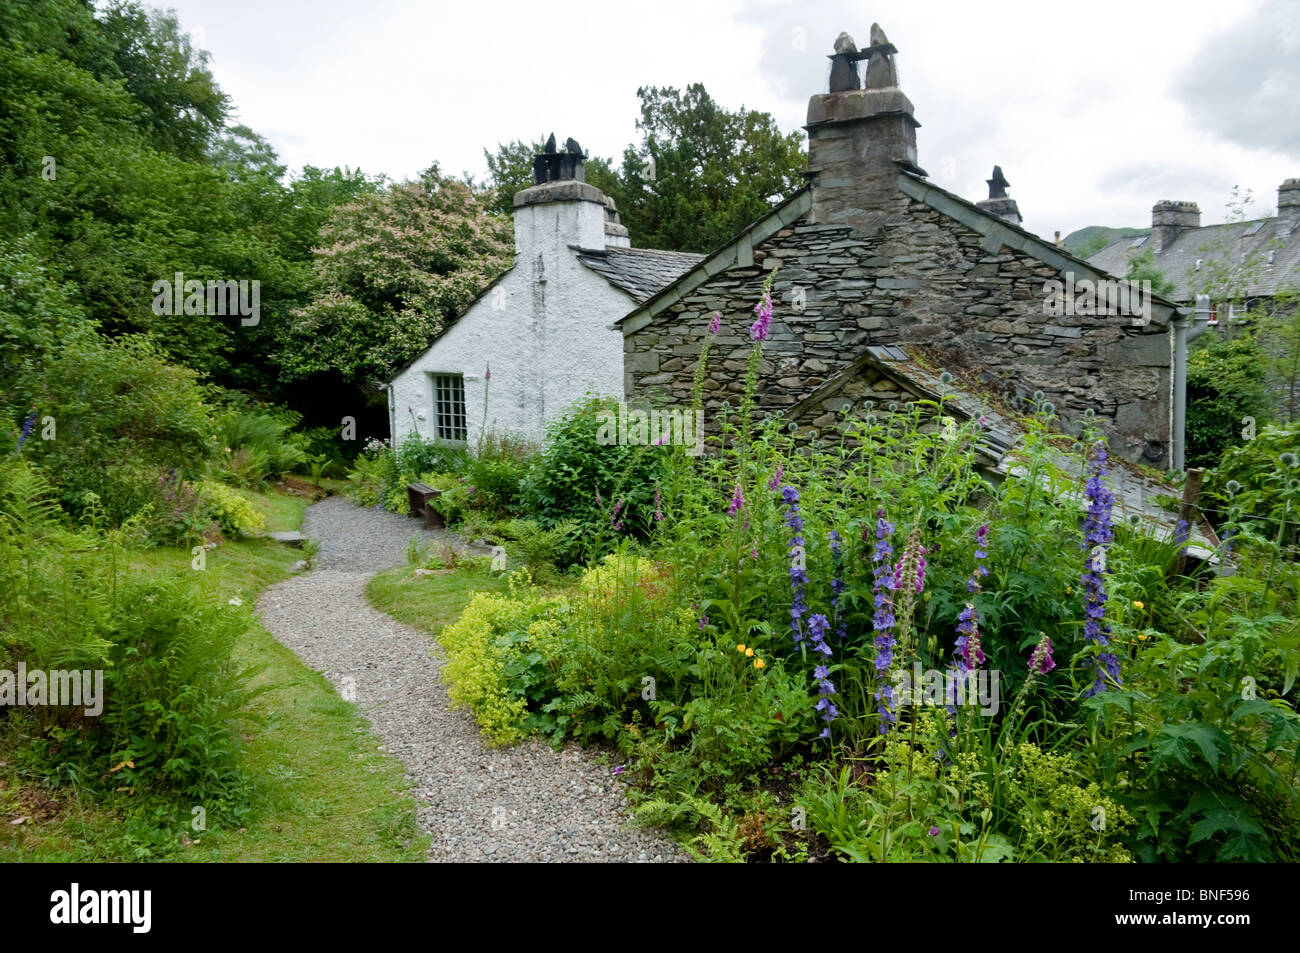 Dove Cottage garden - home to William Wordsworth, Town End, Nr Grasmere, The Lake District, Cumbria, UK - Stock Image